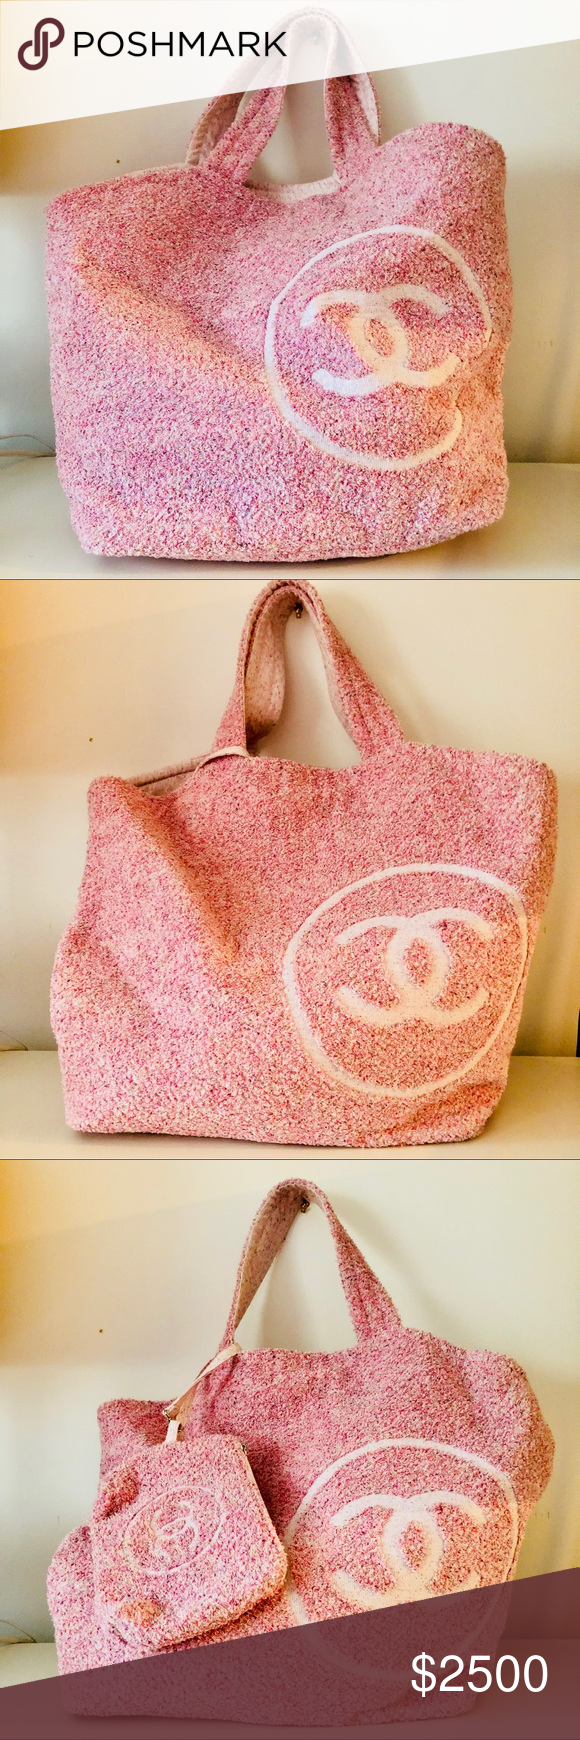 b962bf456 Chanel pink toweling tweed beach bag Brand new Chanel beach bag. Comes with  small detachable pouch and towel. Reversible. CHANEL Bags Totes